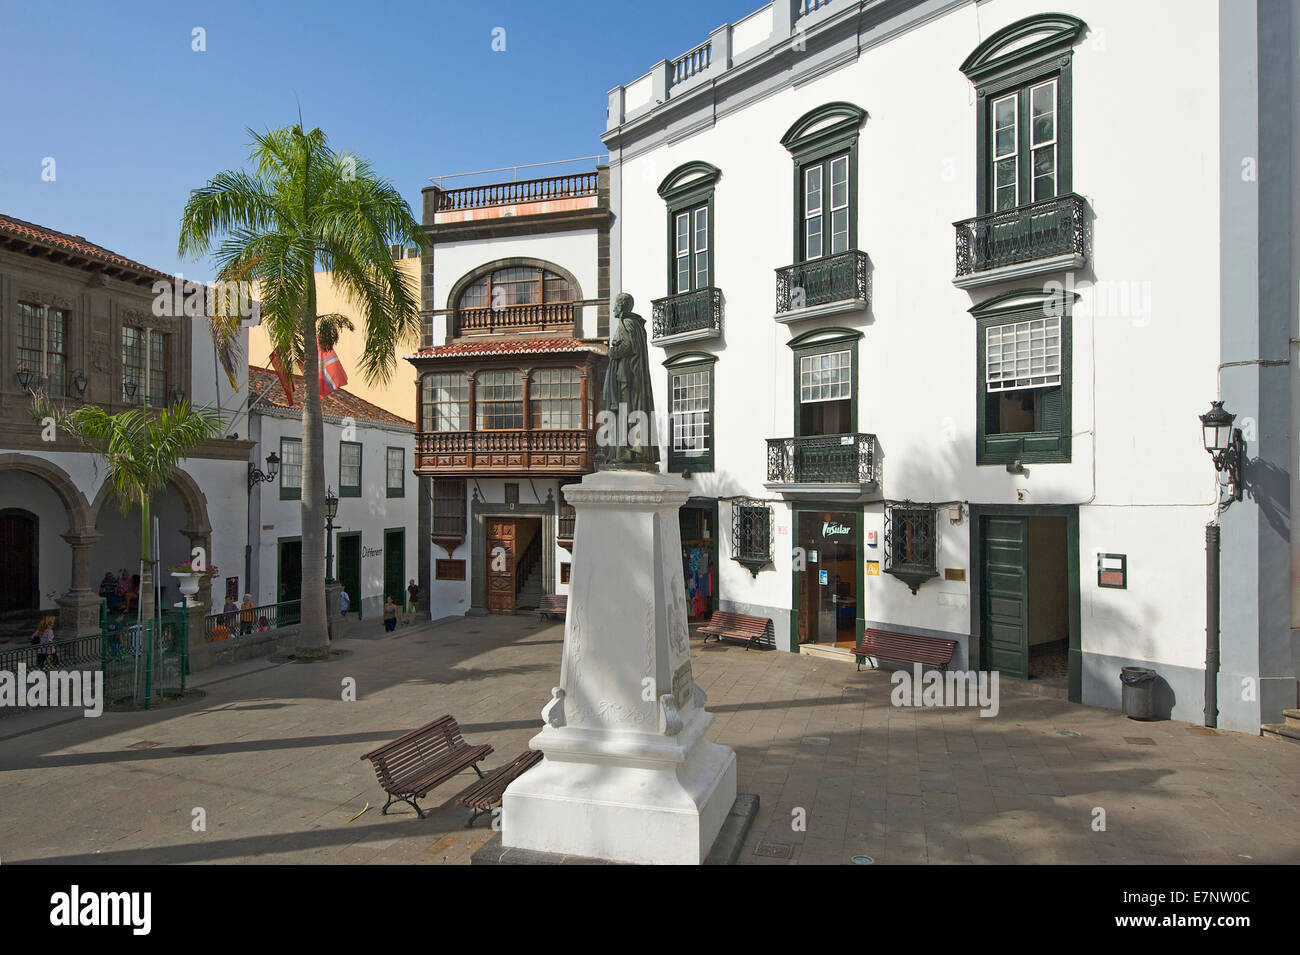 Canaries, Canary islands, isles, La Palma, Spain, Europe, outside, day, nobody, facade, tradition, Traditionally, - Stock Image